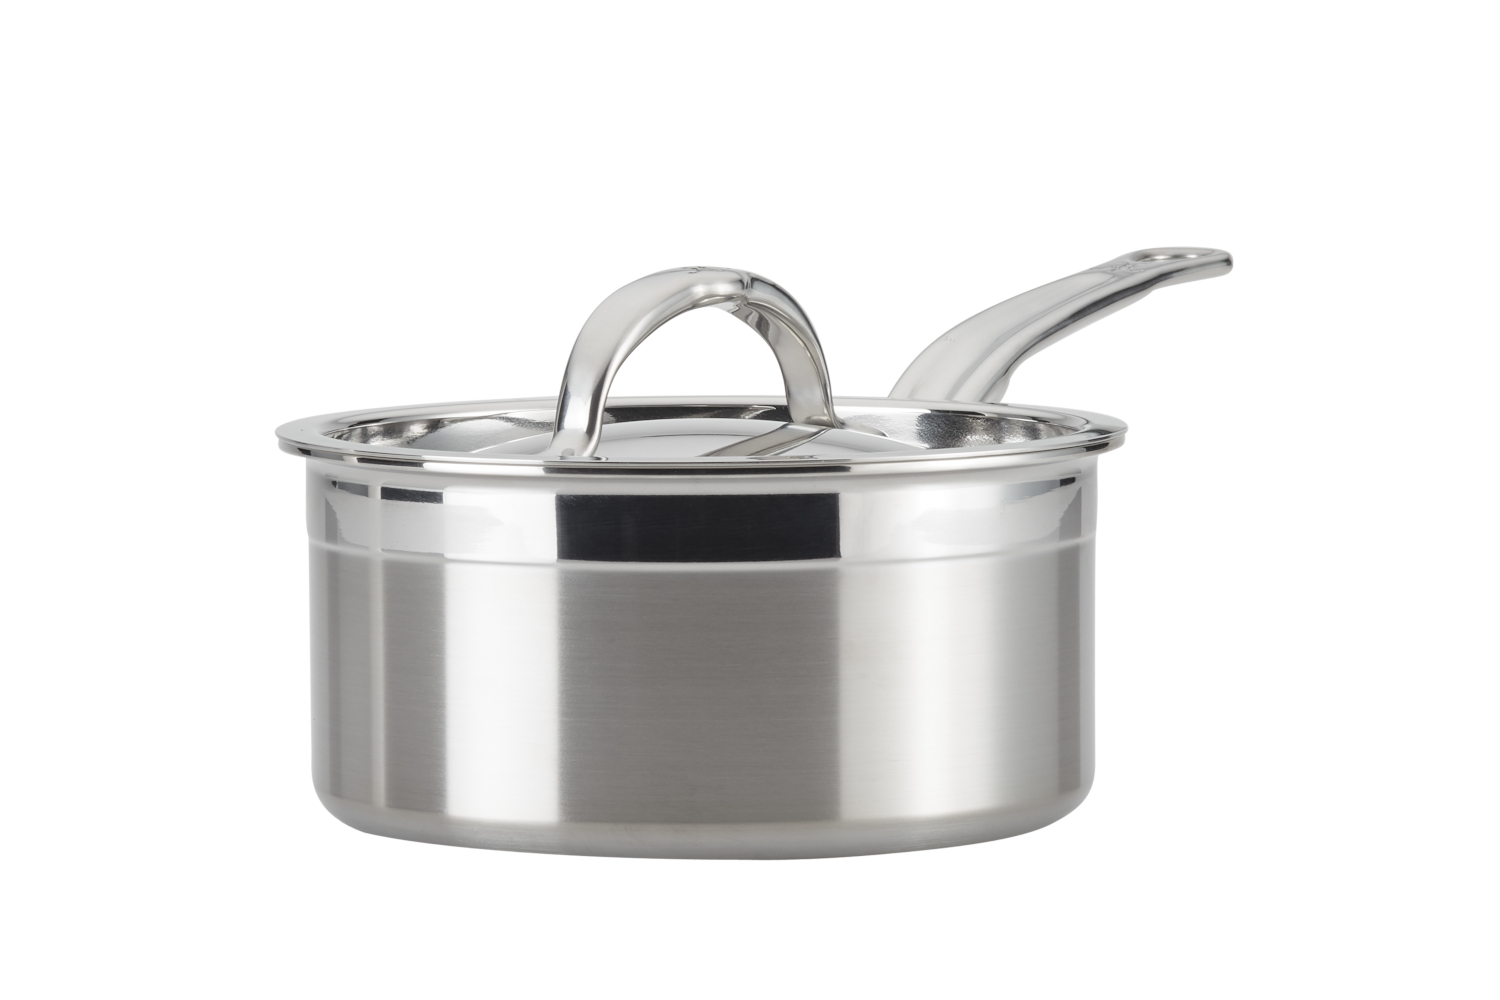 Hestan ProBond Forged Stainless Steel 1 1/2 qt. Sauce Pan w/Lid